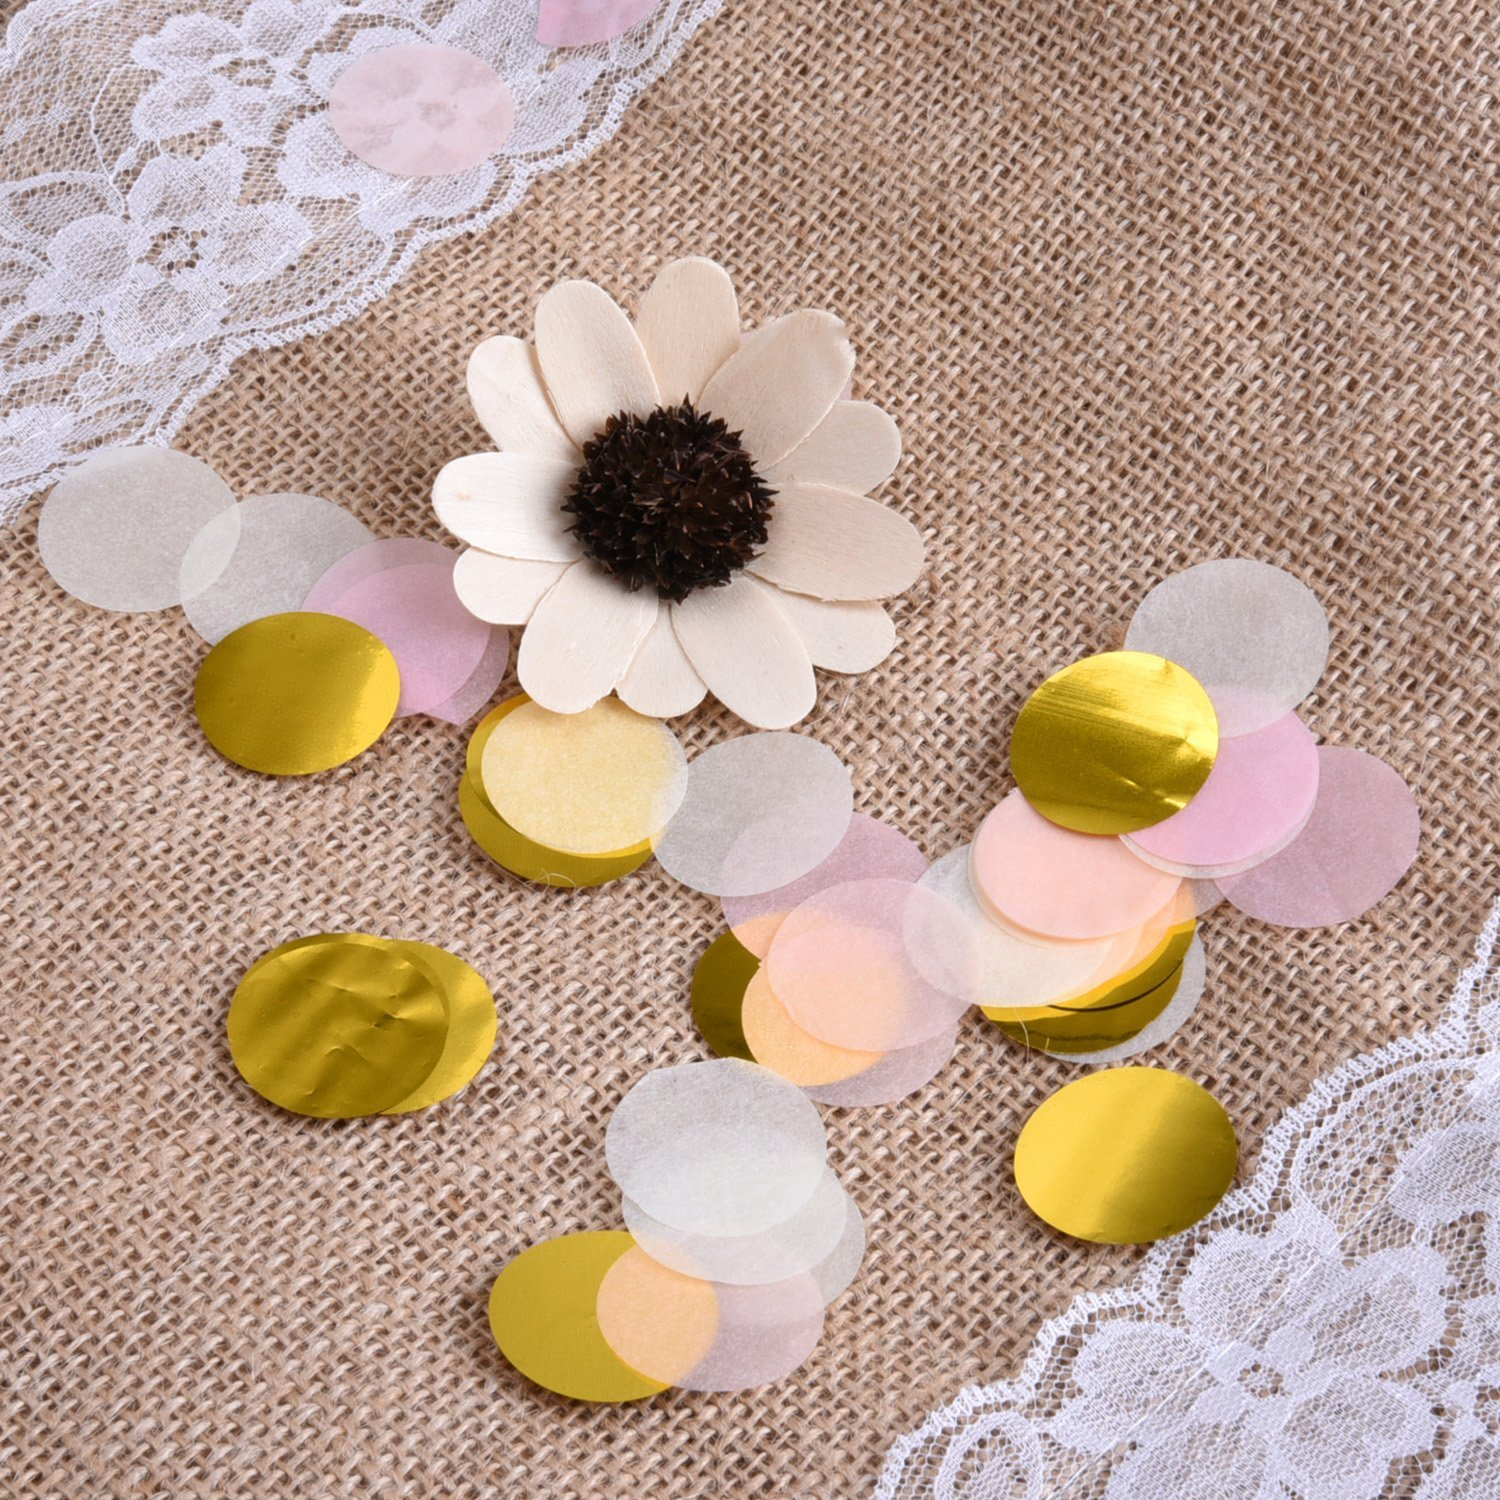 50g 5000+Pieces Paper Confetti 1 Inch Round Tissue Paper Table Confetti Dots for Wedding Party Decorations, Mixed Colors balony